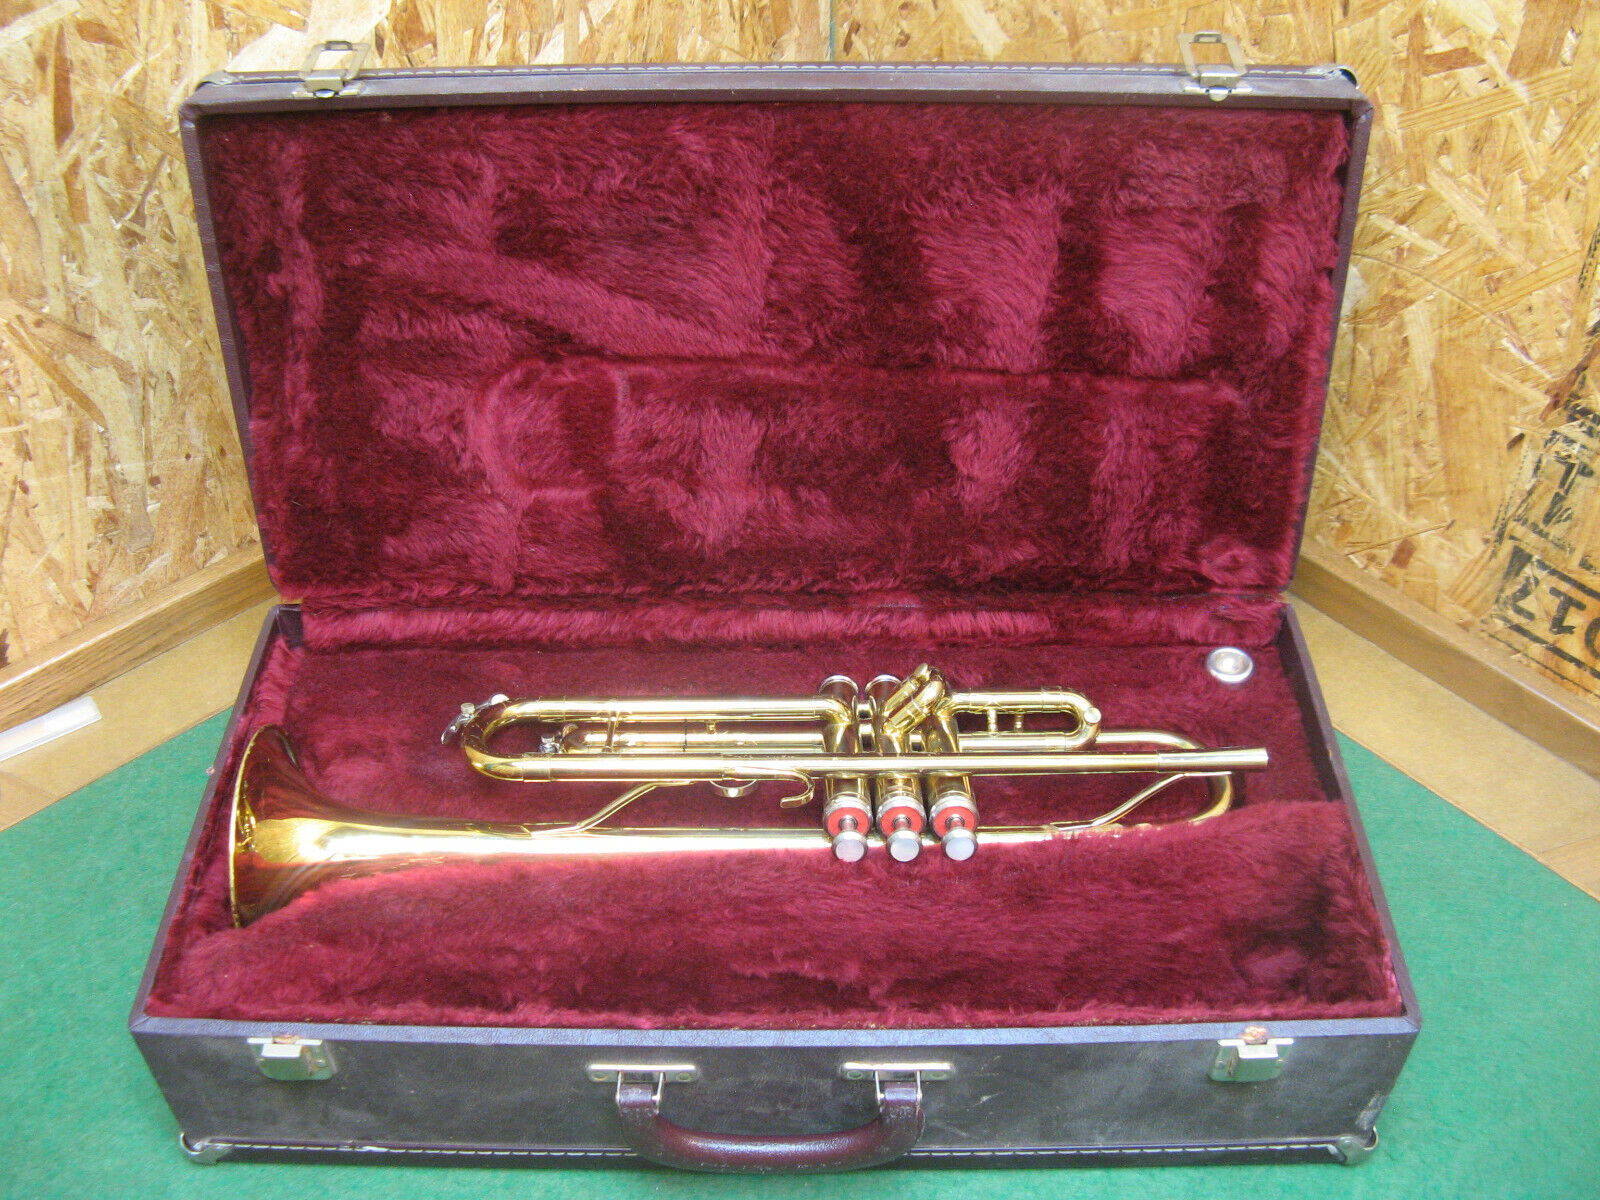 King Tempo Trumpet Model 600 - Ready To Play - Case And Bach 7C Mouthpiece - $227.89